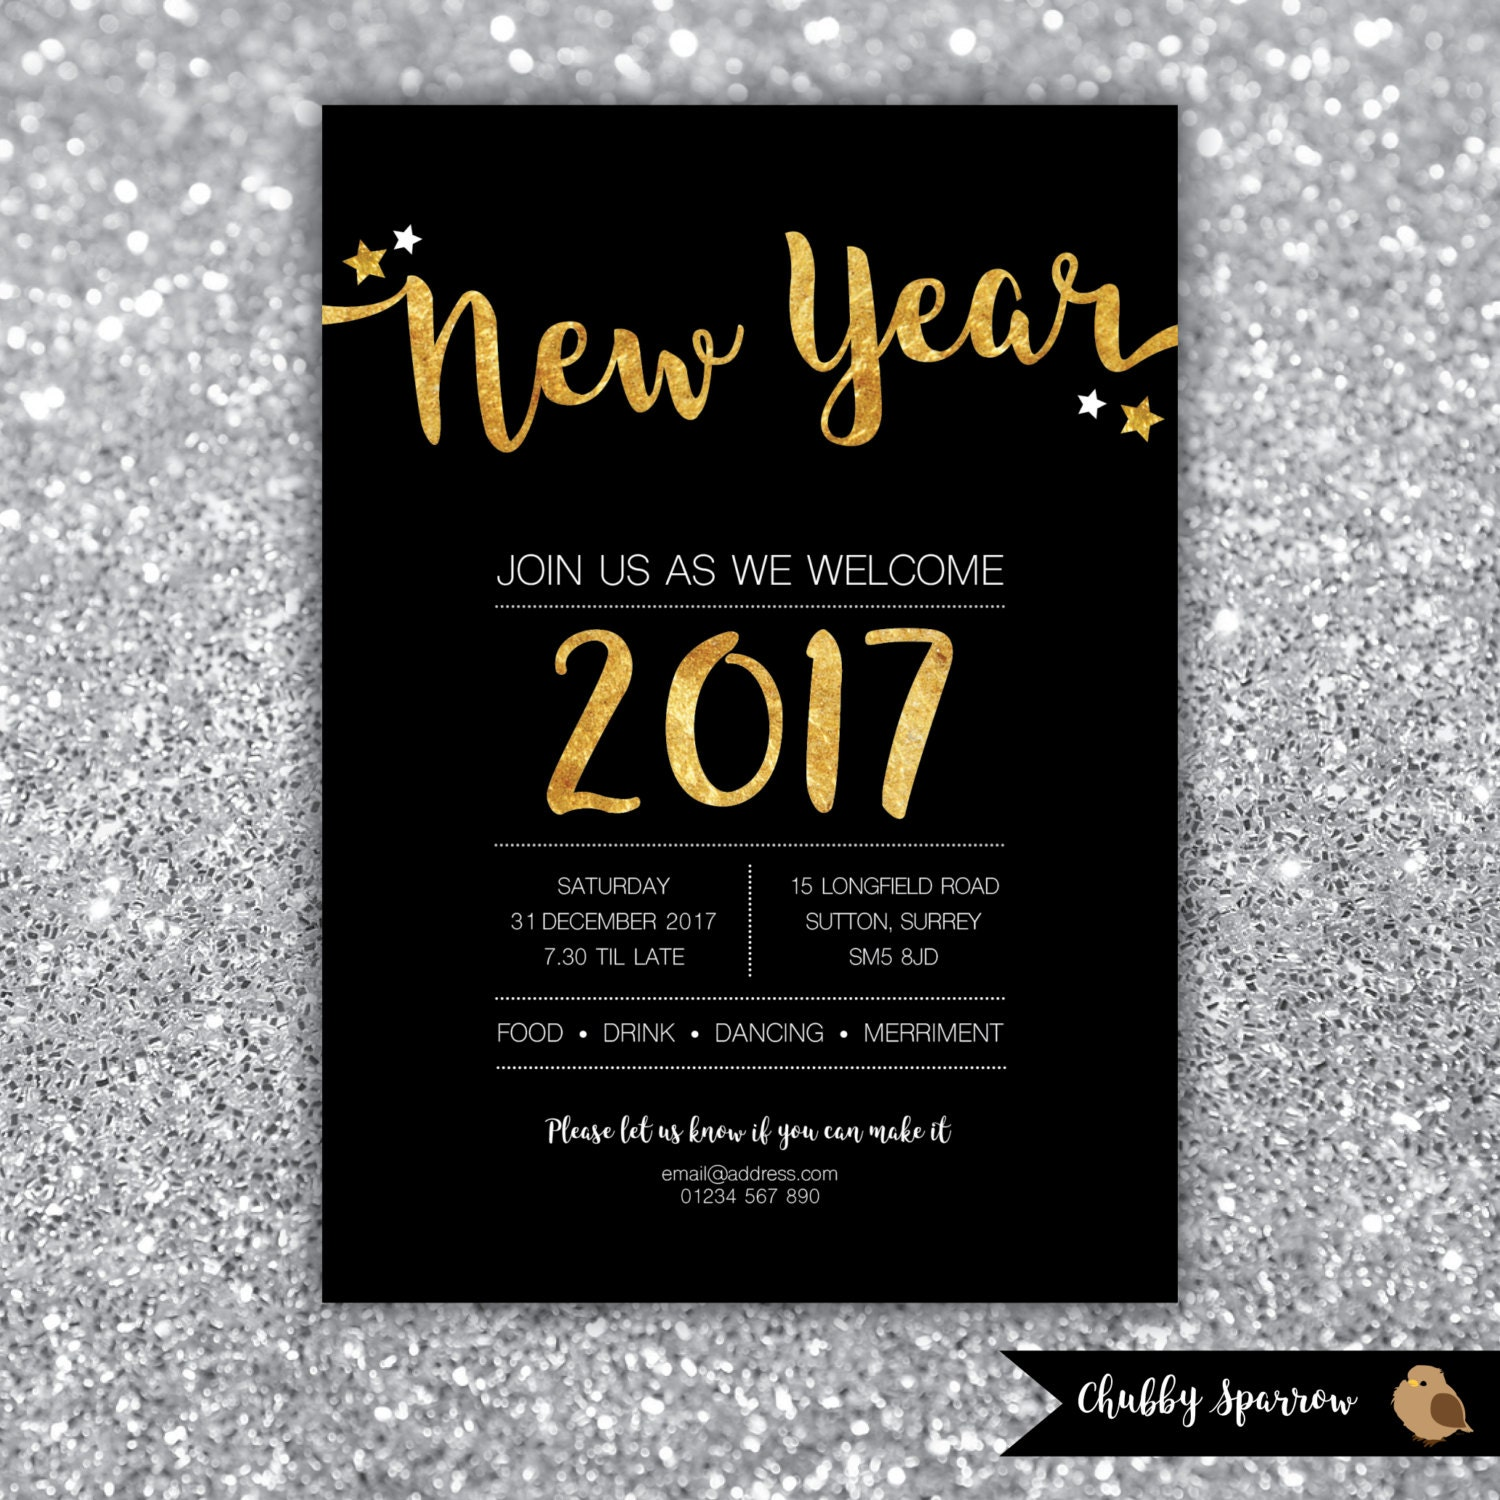 New years eve invitations